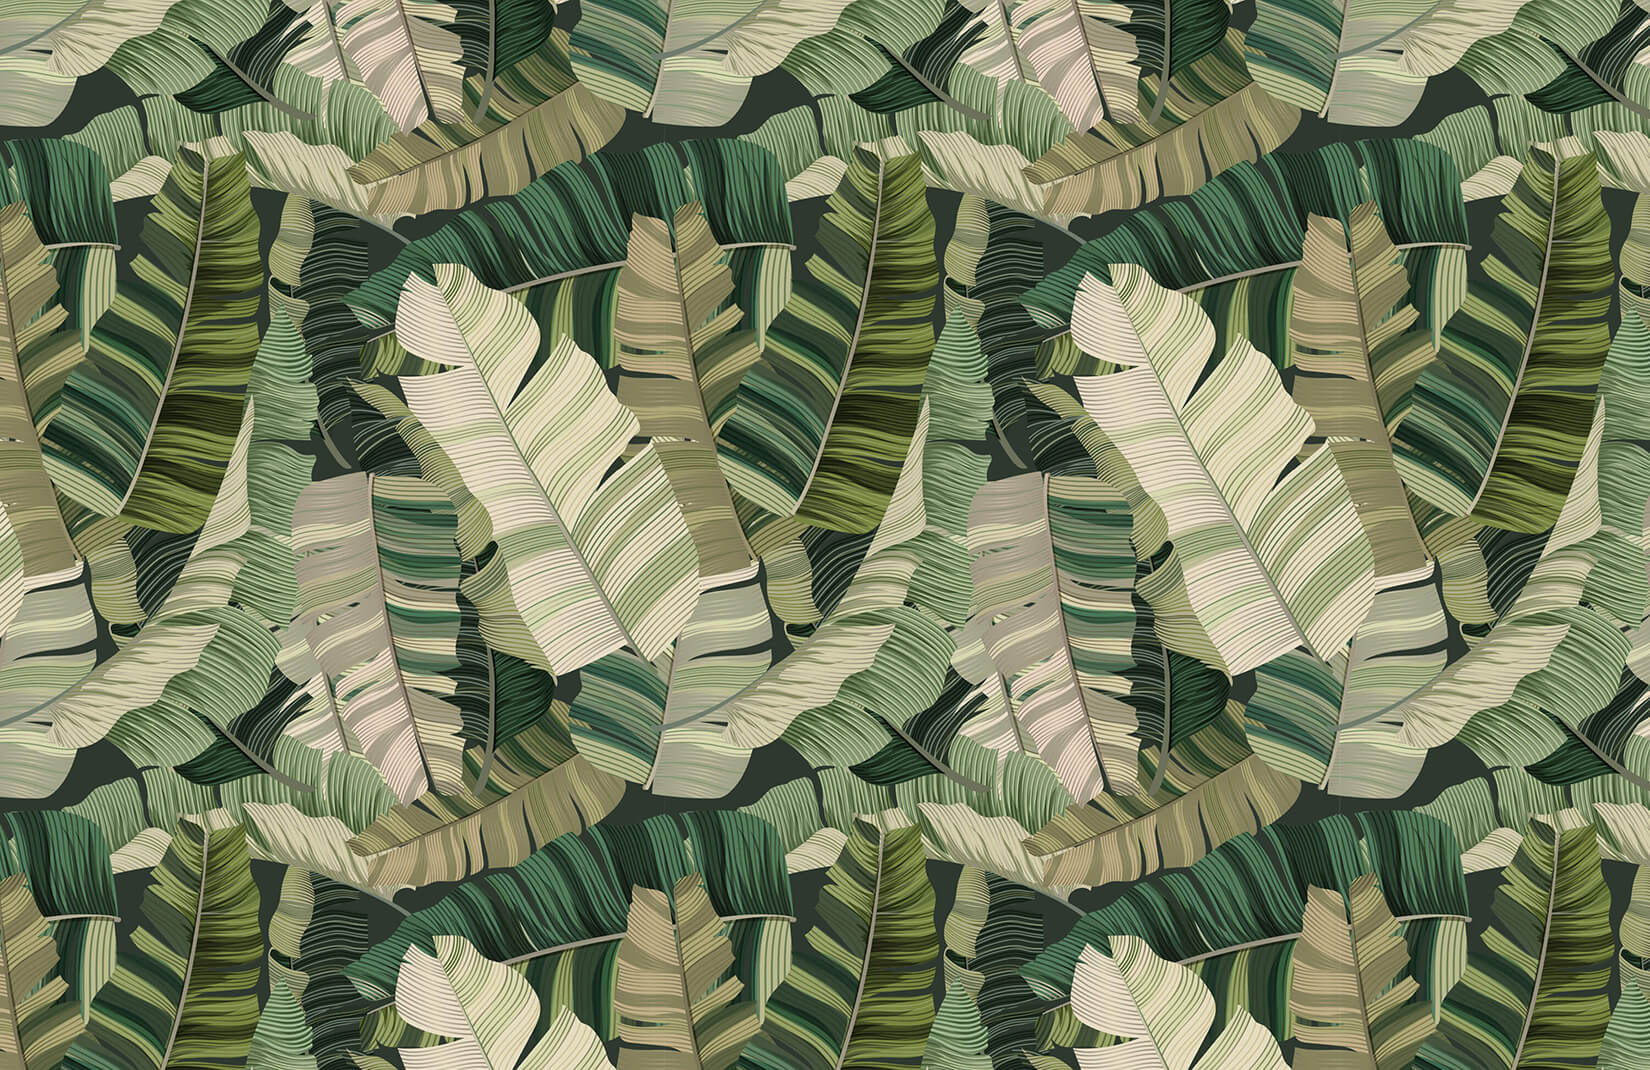 3D Tropical Camo Leaf Wallpaper